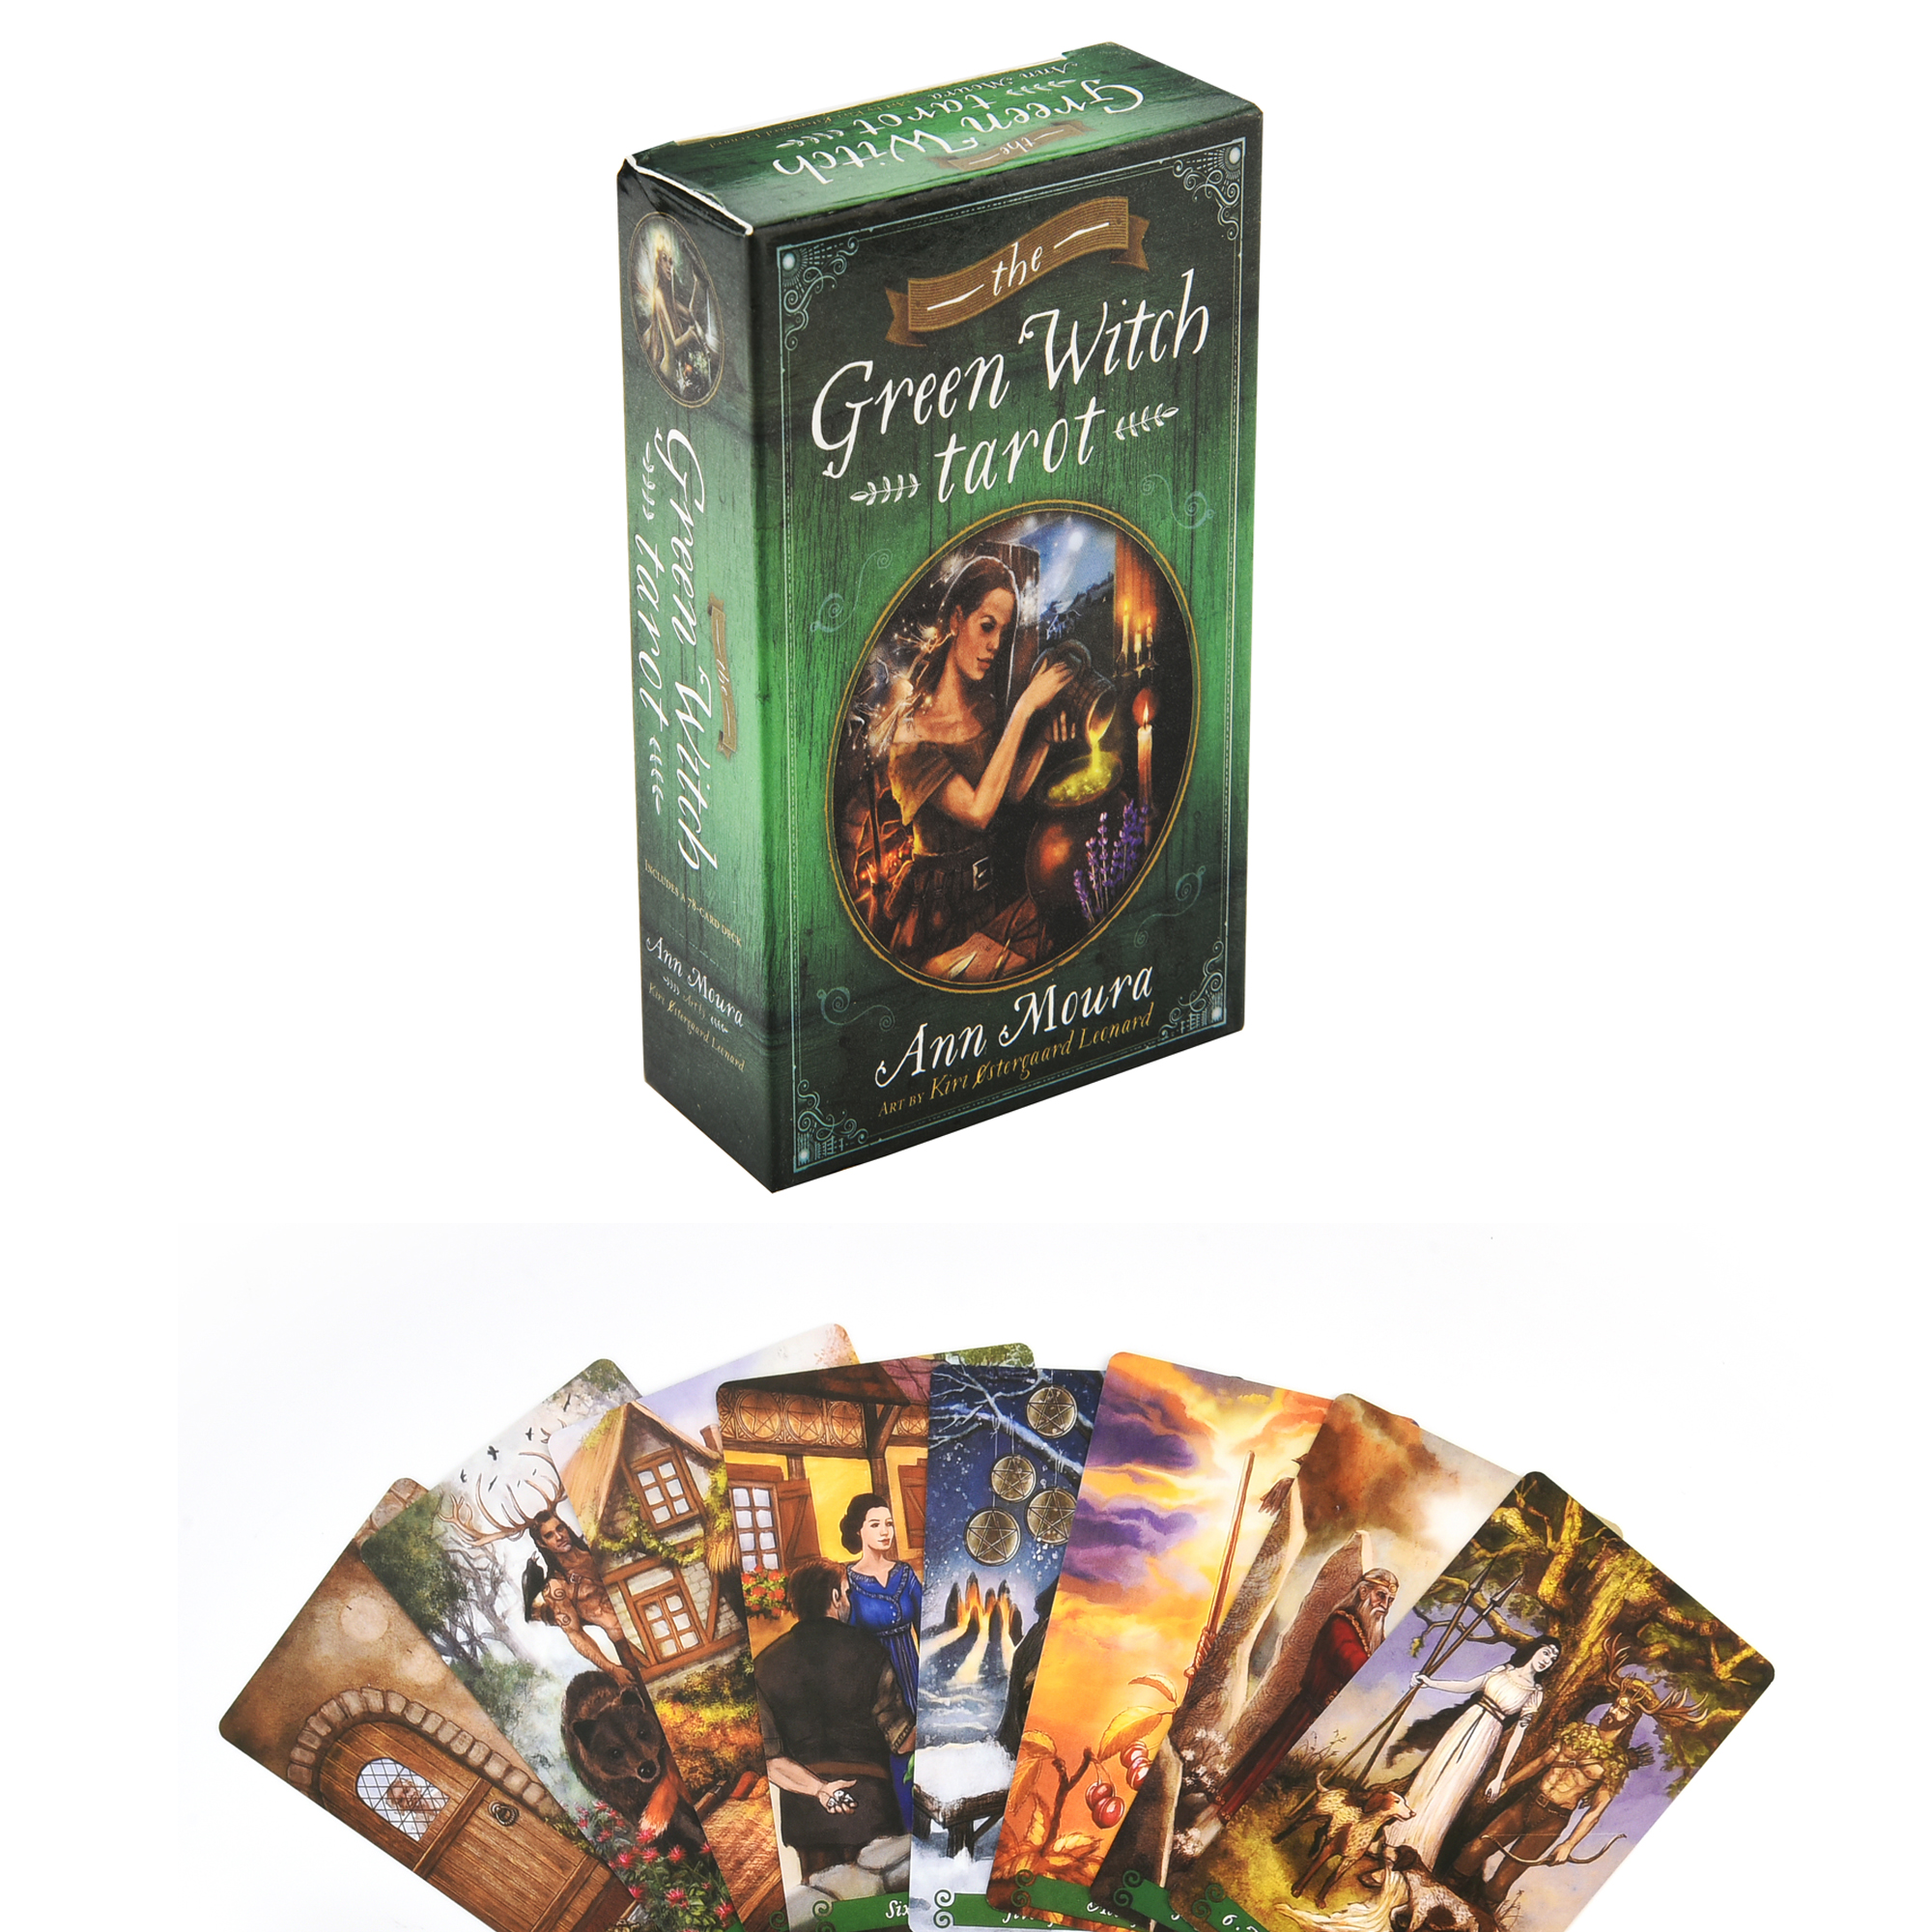 The Green Witch Tarot Oracle Tarot Cards Game English Viceversa Tarot Deck Table Card Board Games Party Playing Oracle Cards